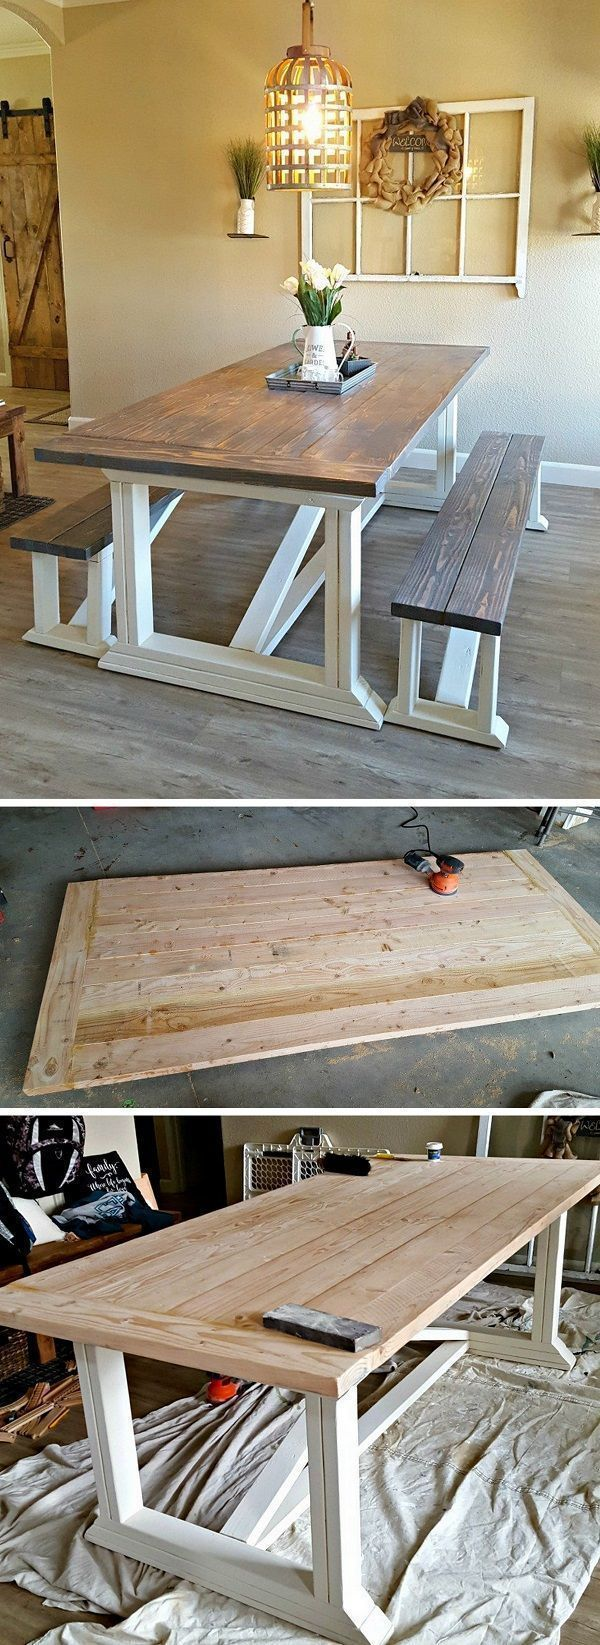 35 Best DIY Farmhouse Table Plans for Your Dining Room images